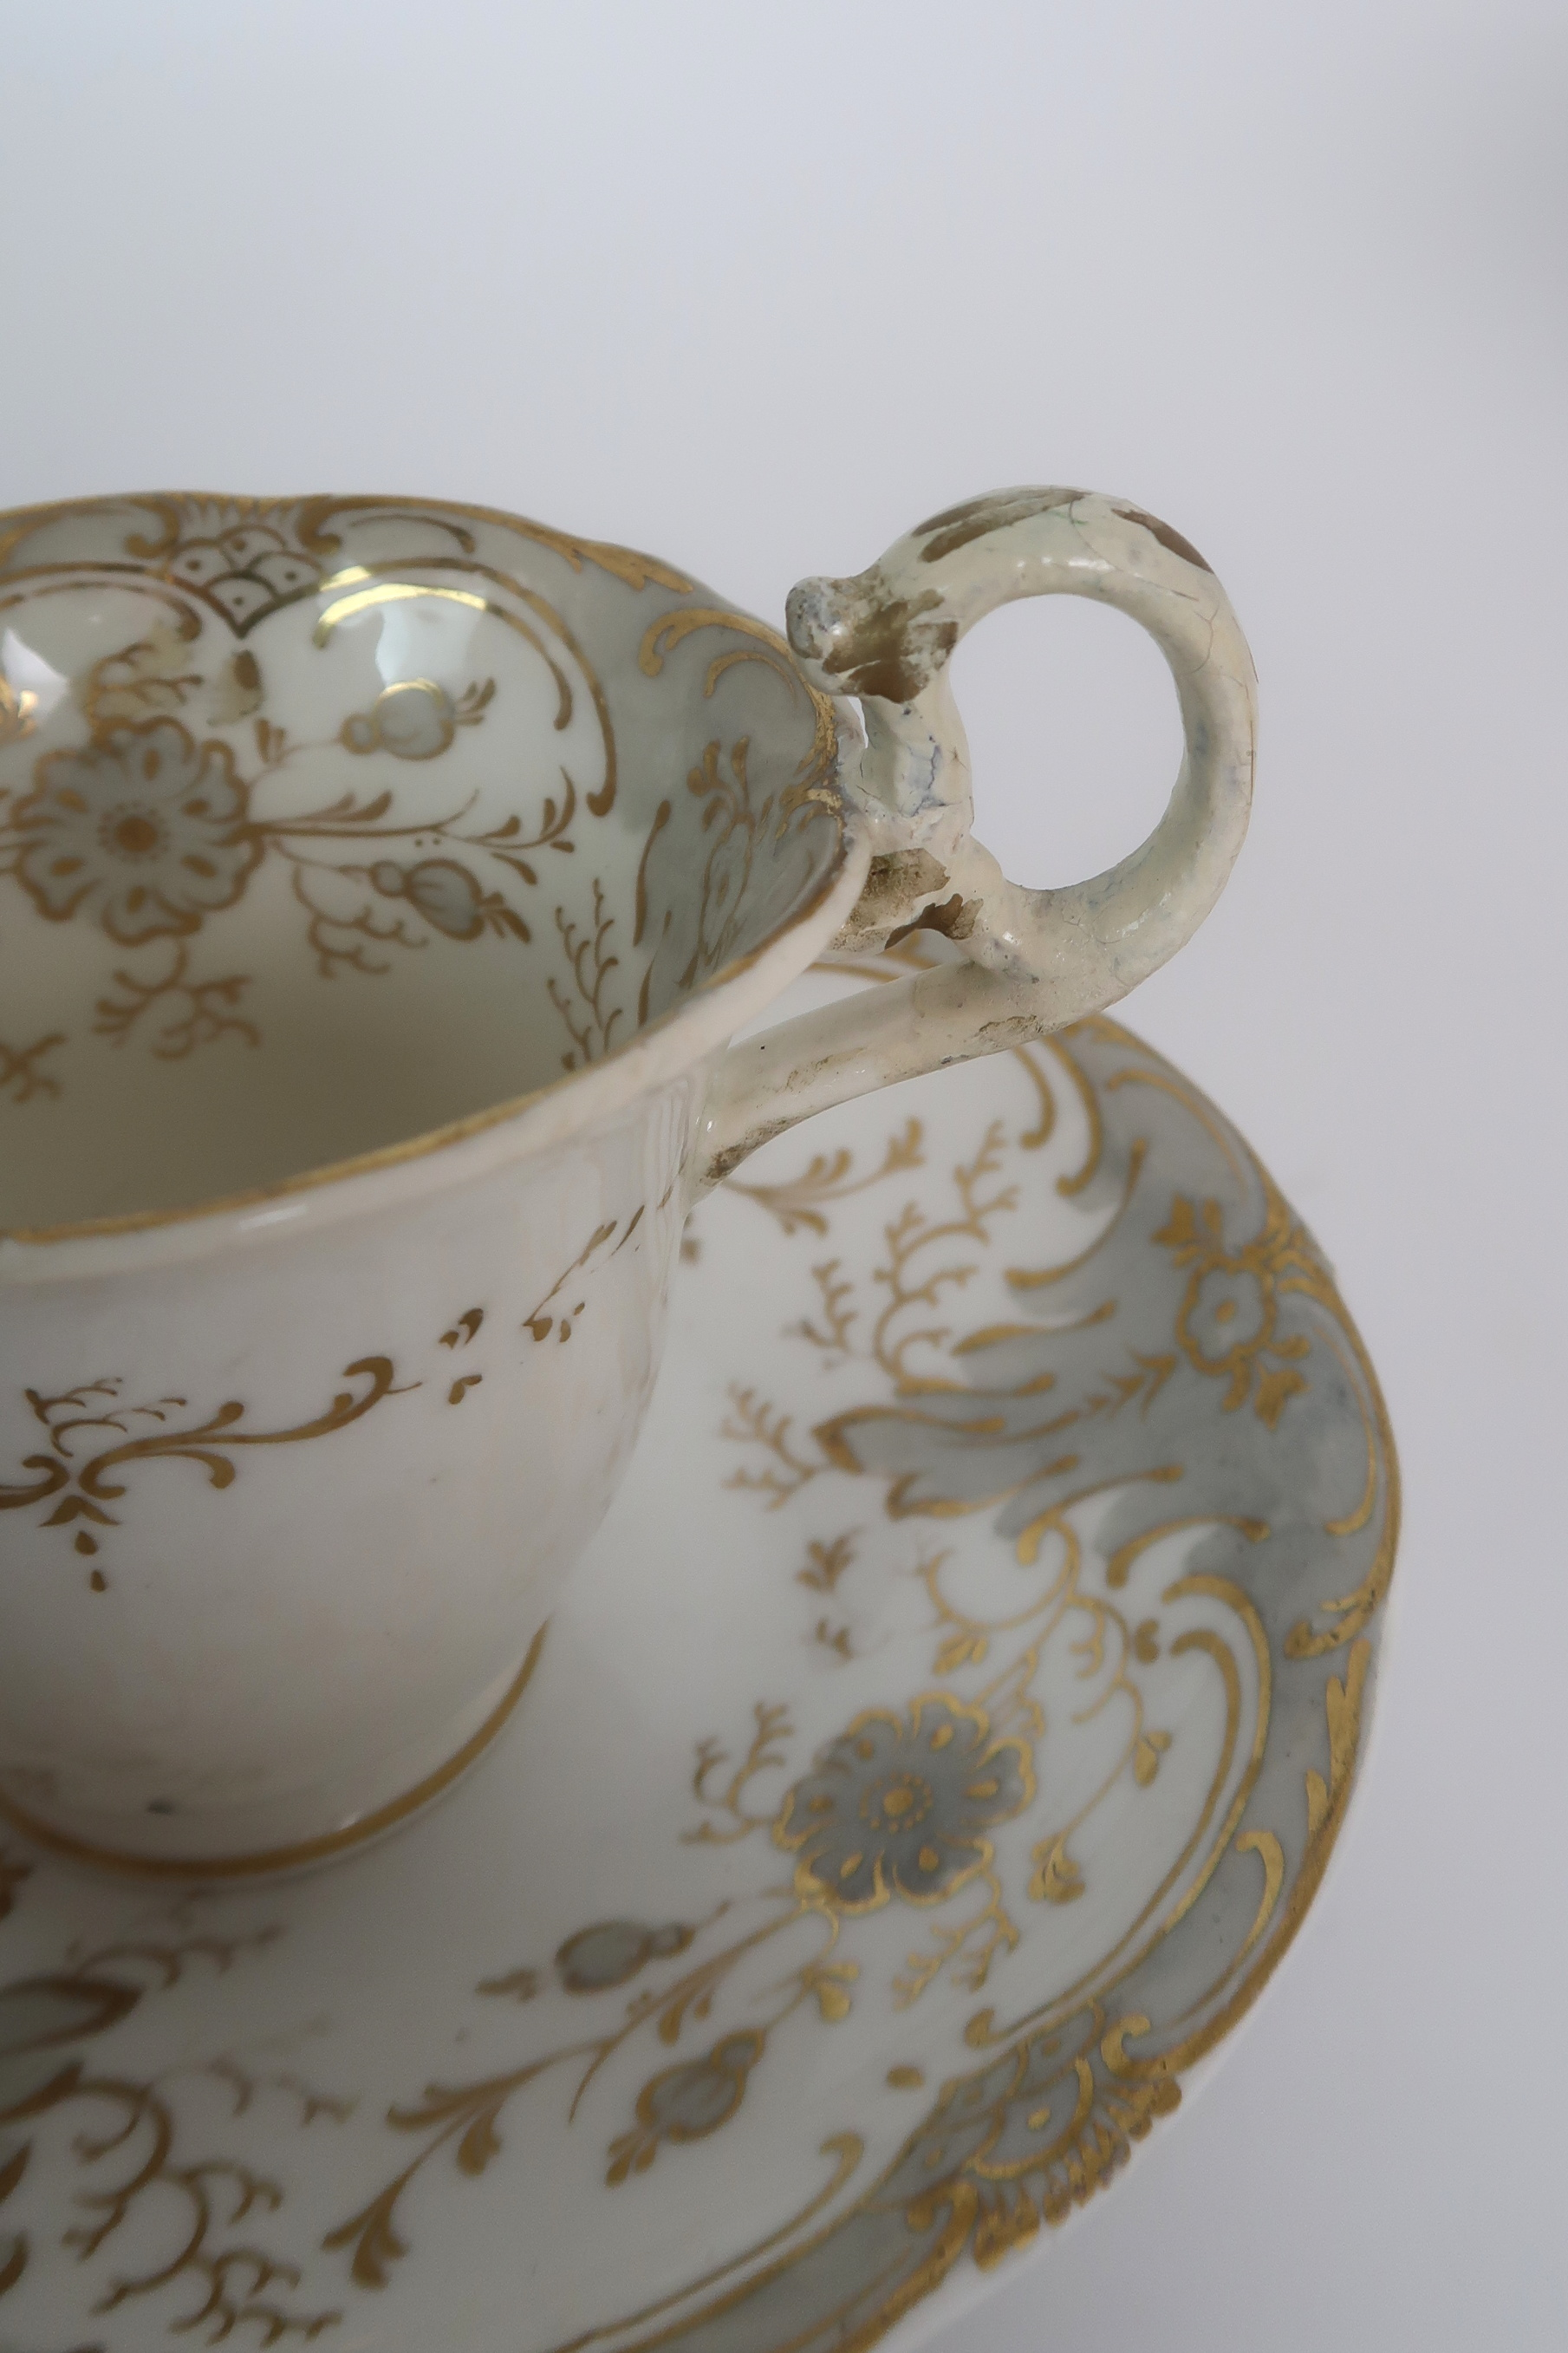 A COLLECTION OF 19TH CENTURY ENGLISH TEA AND COFFEE WARES the white ground with either grey and gilt - Image 17 of 22